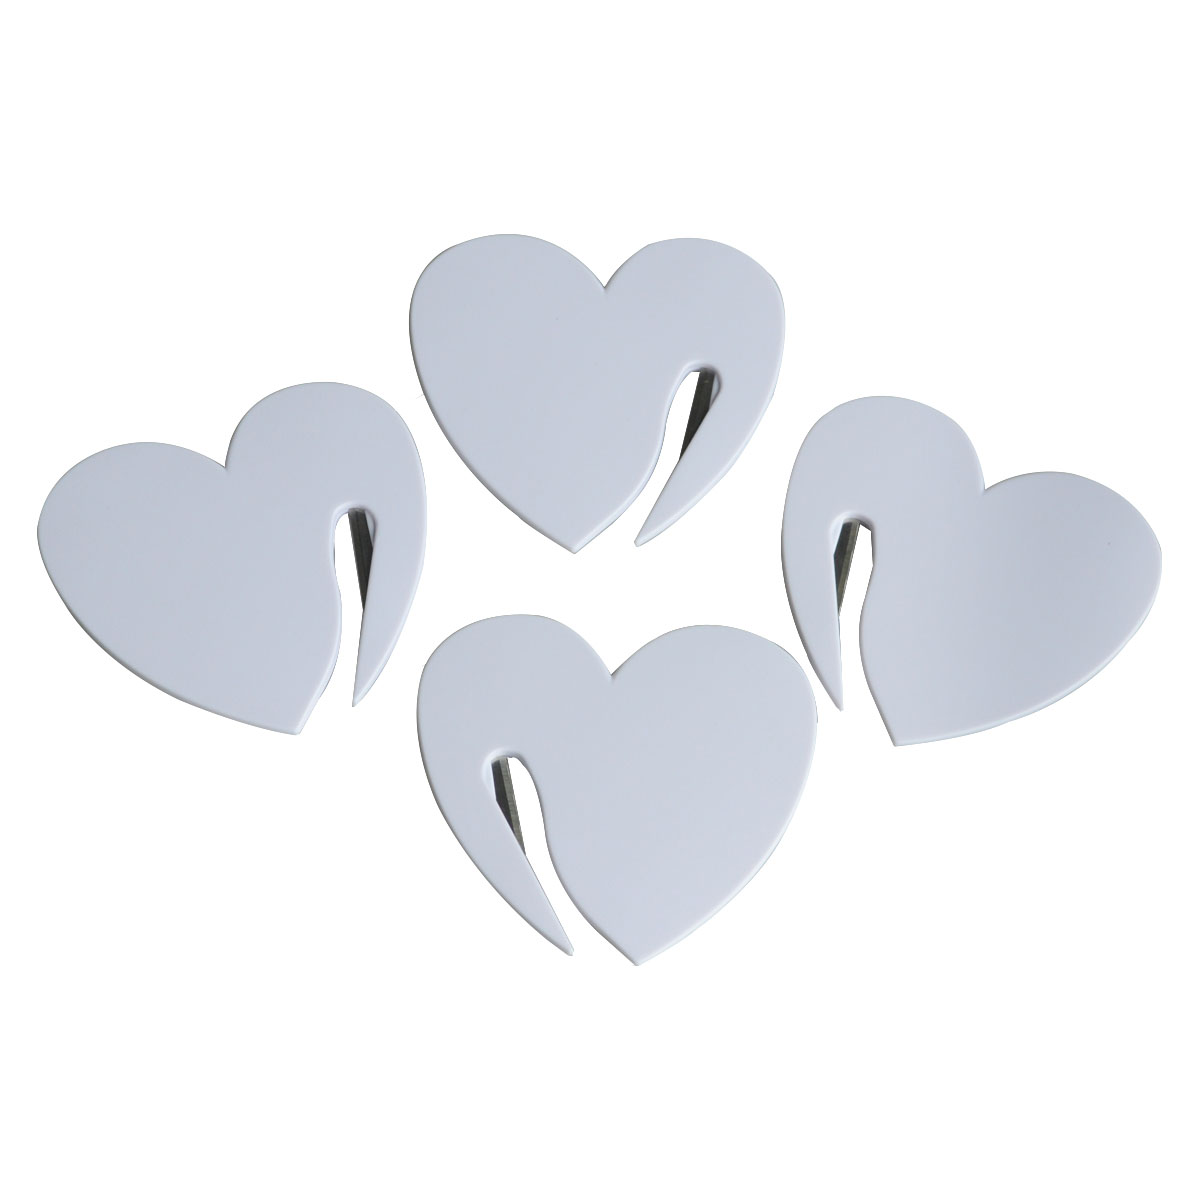 1pcs Durable Plastic Letter Mail Envelope Opener Tiny Heart-shape Paper Guarded Cutter Blade Office School Equipment